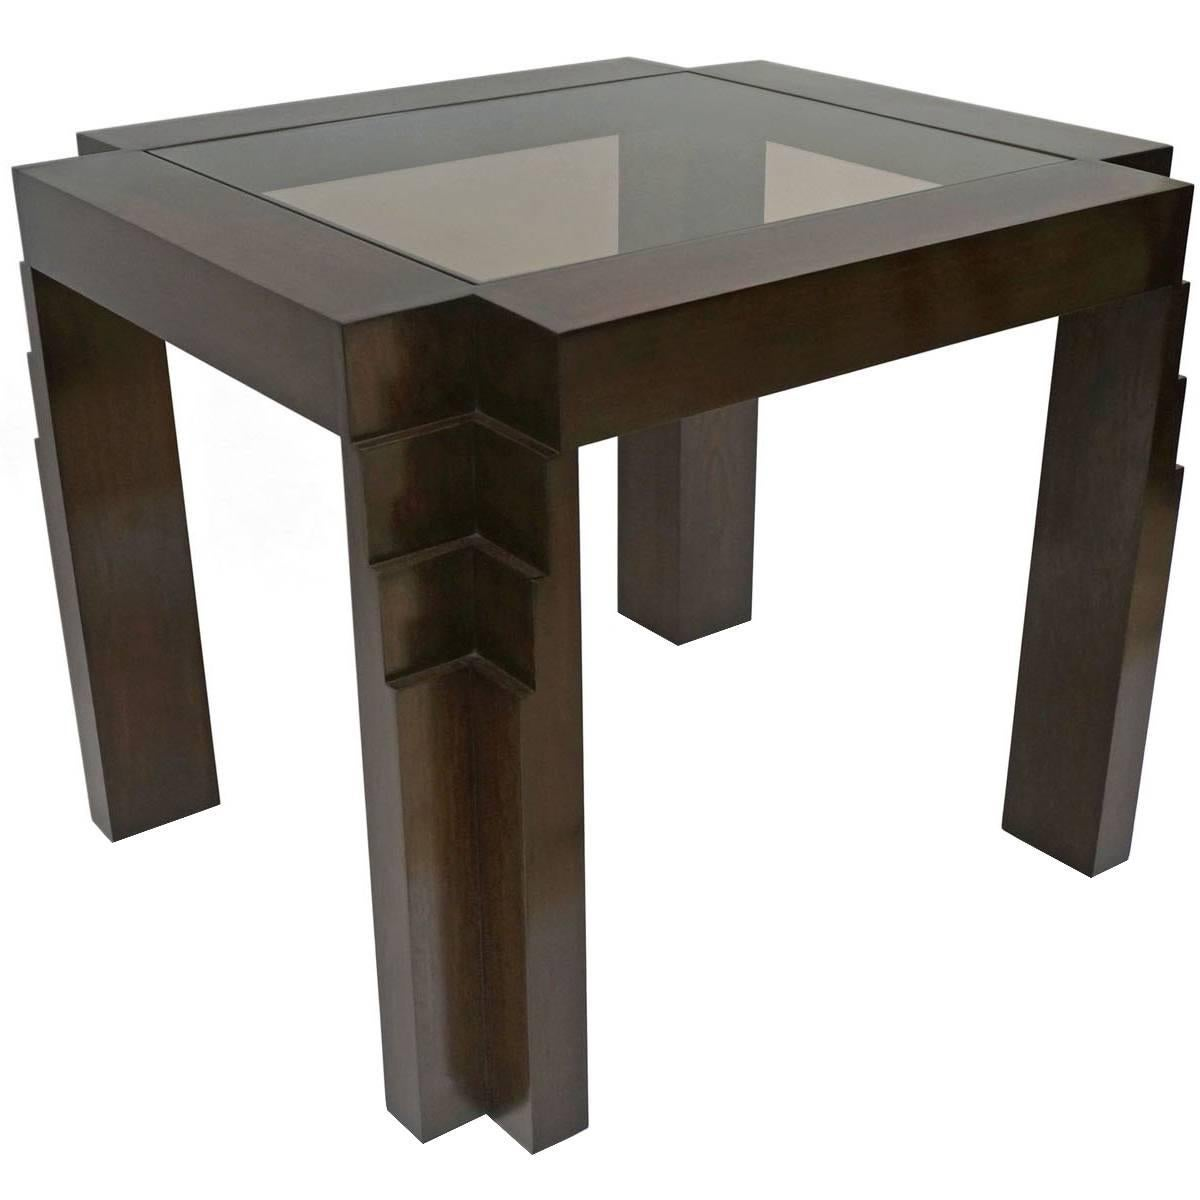 French Art Deco Oak Side Table with Stepped Block Legs and Glass